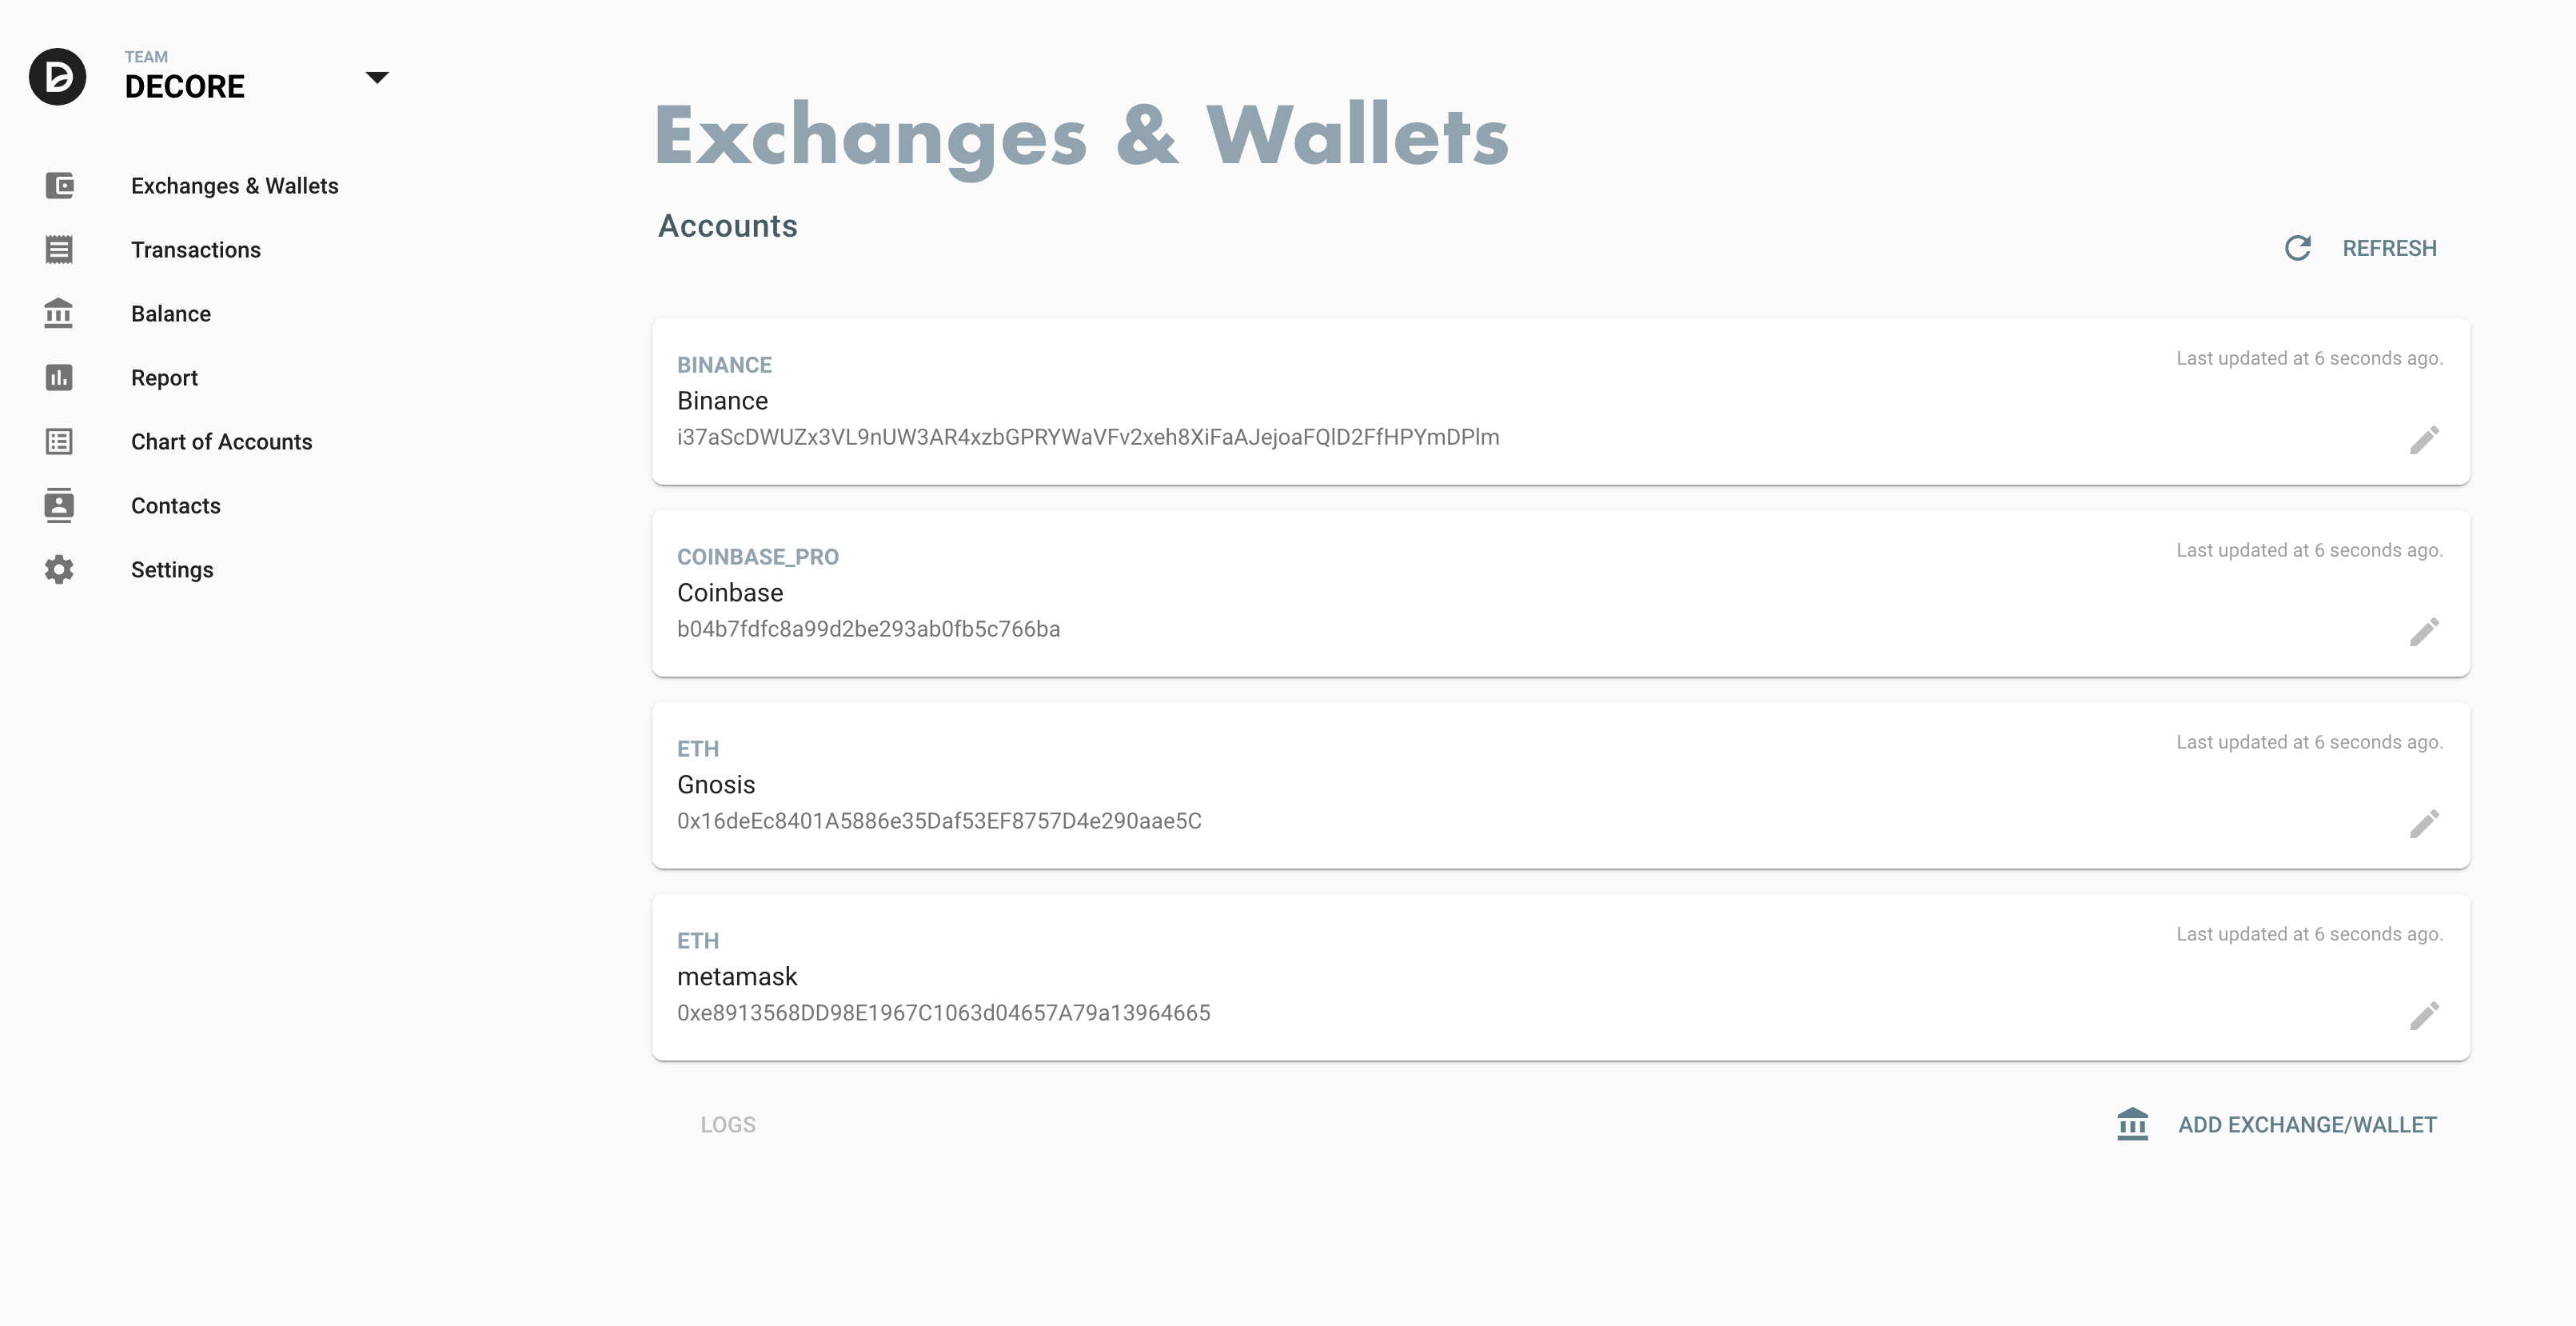 decore-exchanges-wallets